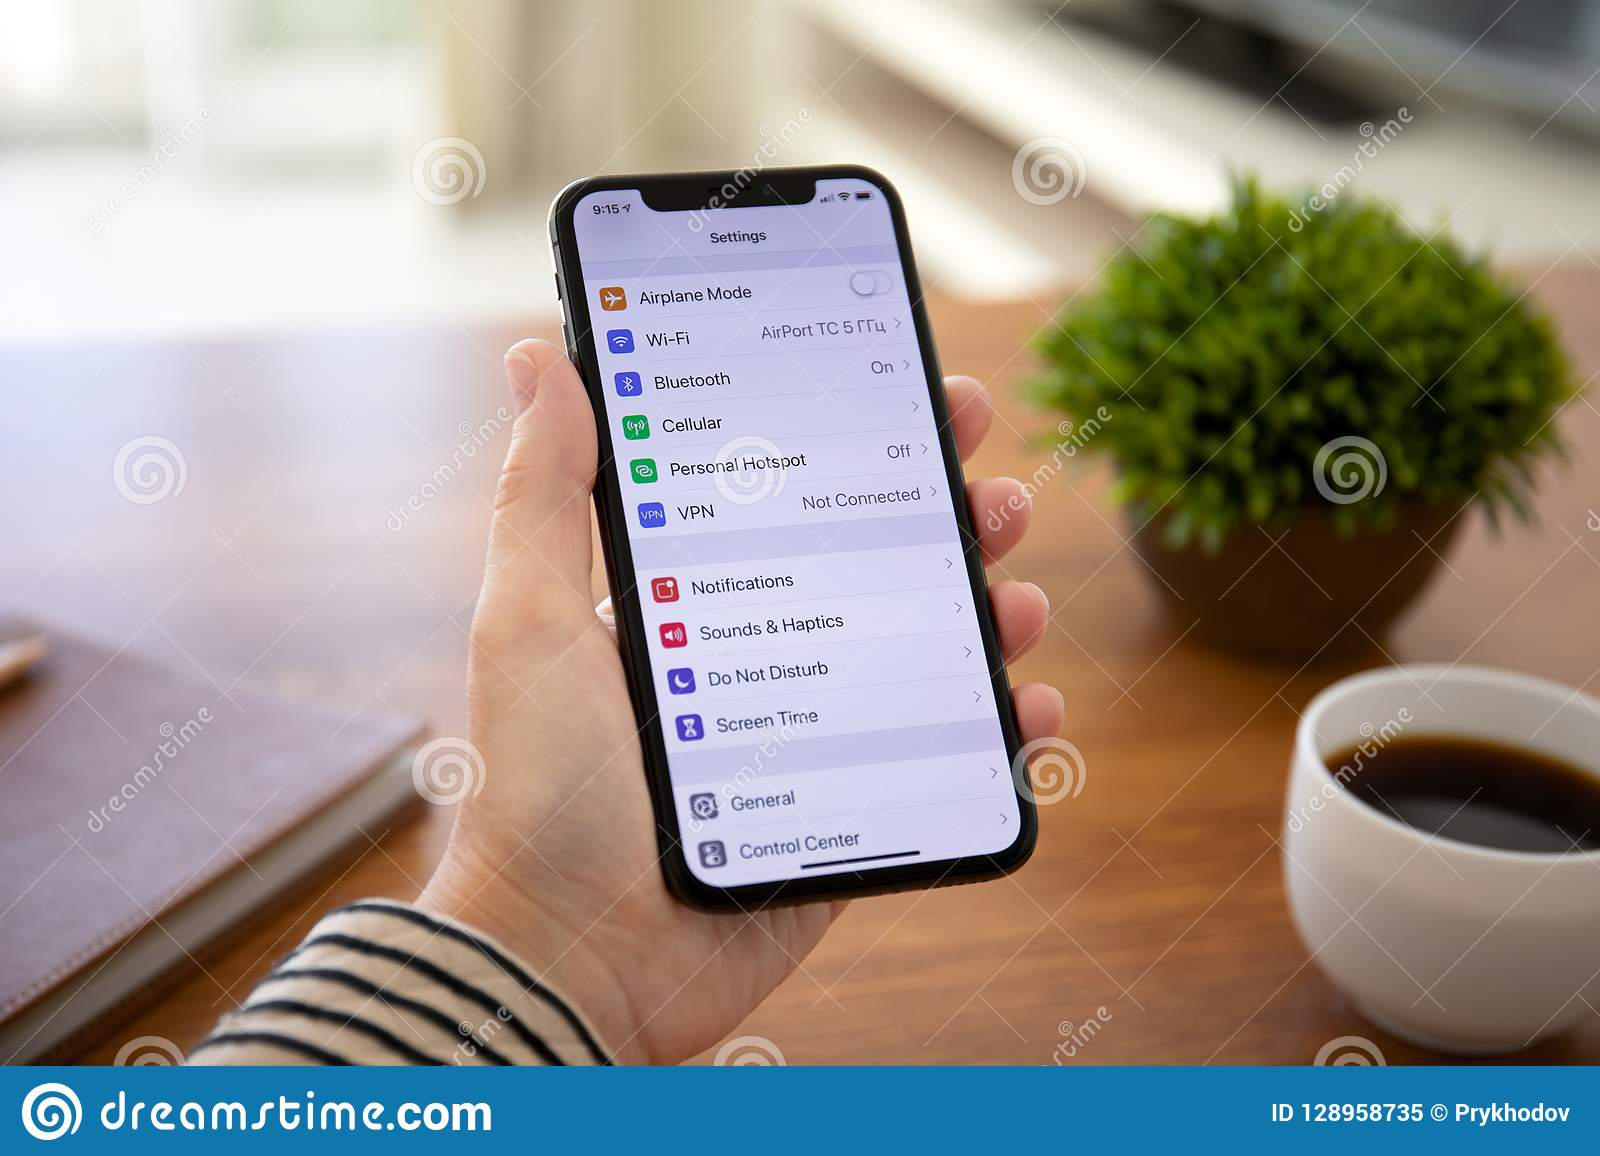 Woman holding iPhone X with Settings on the screen